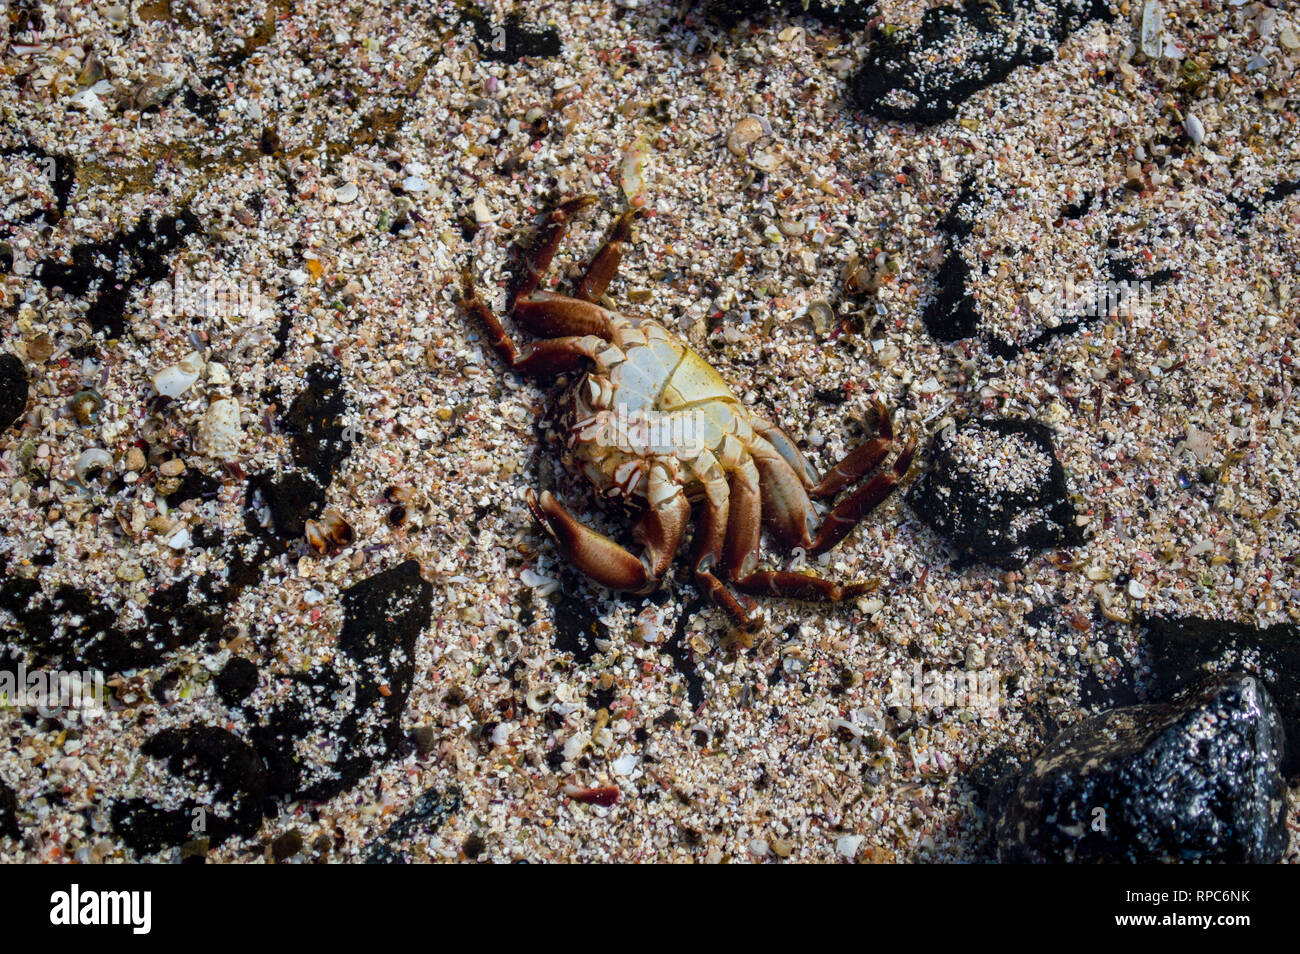 A crab in an inland pool on the northwest coast of Fuerteventura, Canary Islands - Stock Image